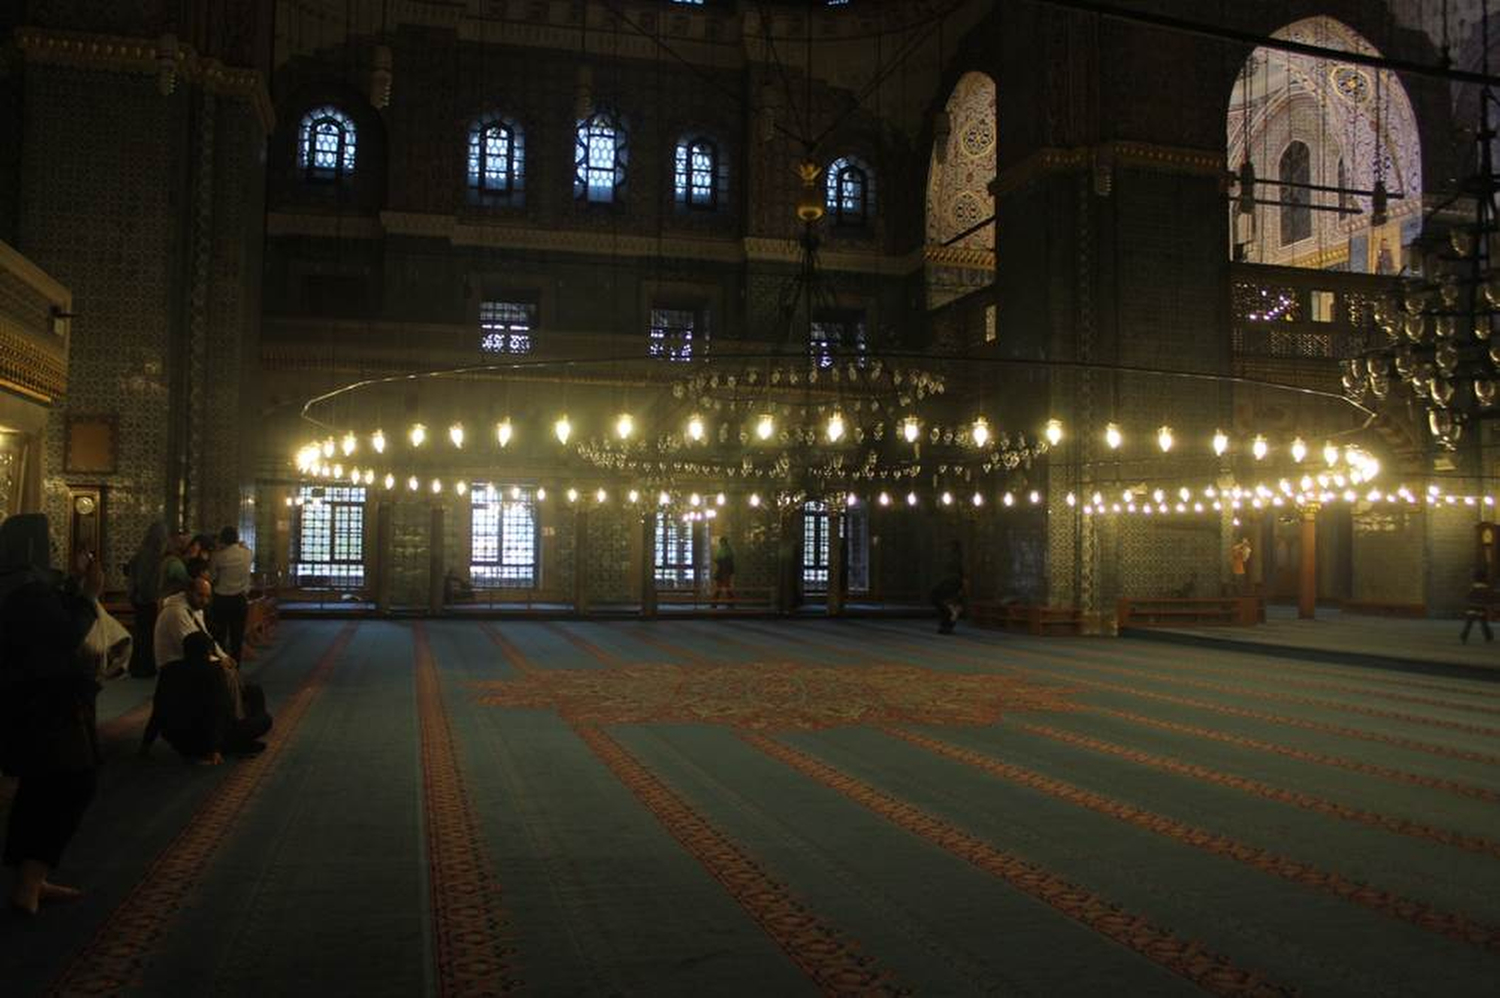 Interior of the spacious Old Mosque in Istanbul. Most of the mosques are well-carpeted and brightly lit. Wearing shoes in a mosque is prohibited, but the carpets kept our feet warm and comfortable. Phillip Dube '16/Bates College.